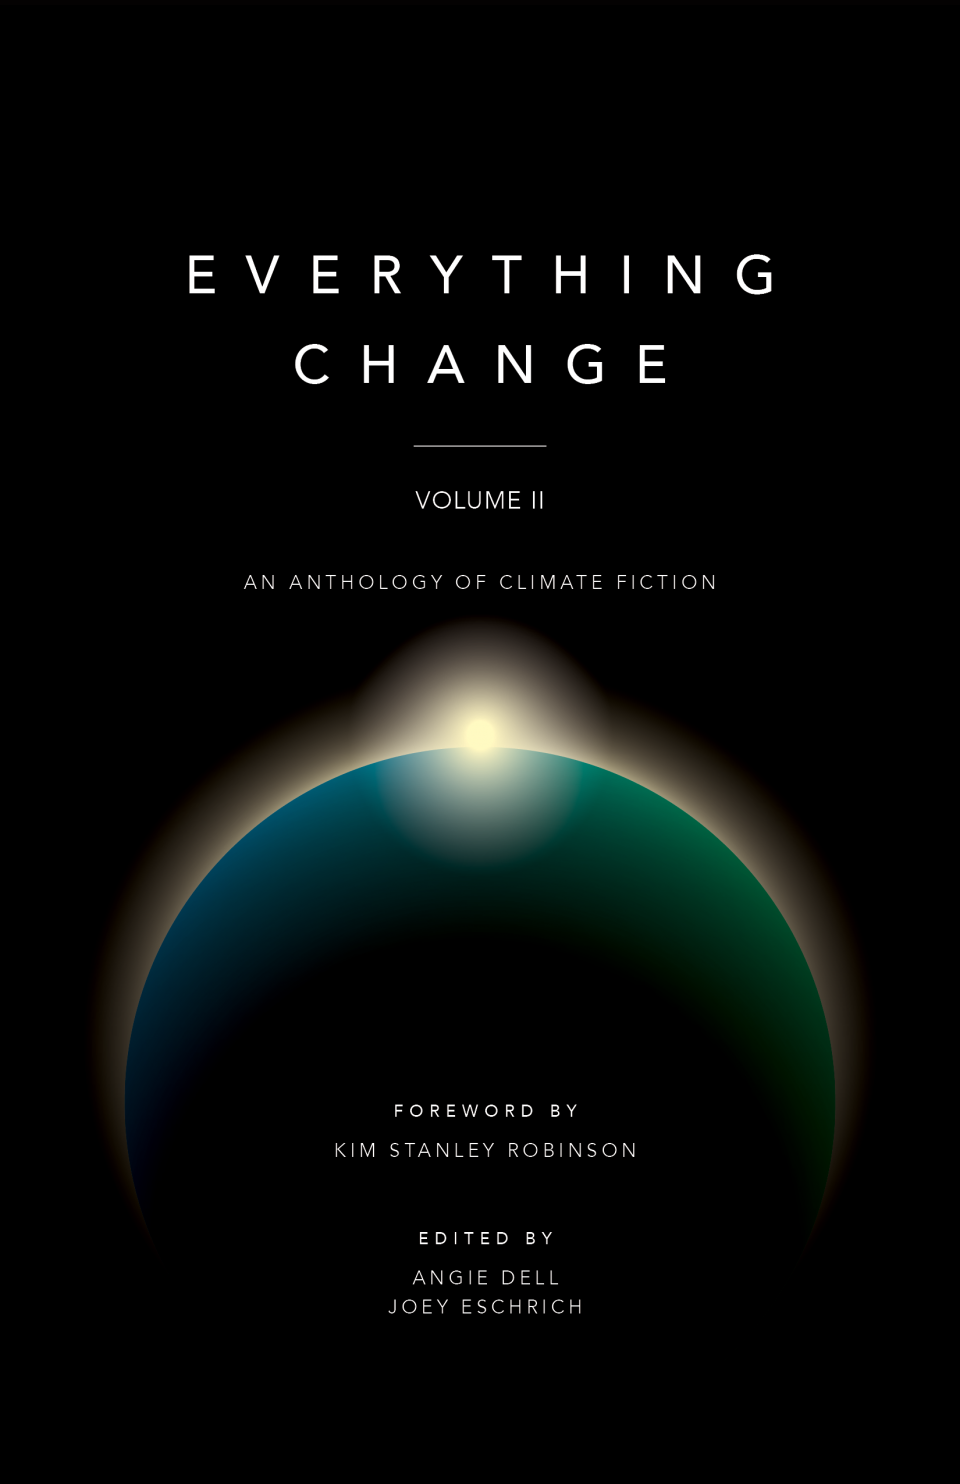 Front cover of Everything Change Vol. II